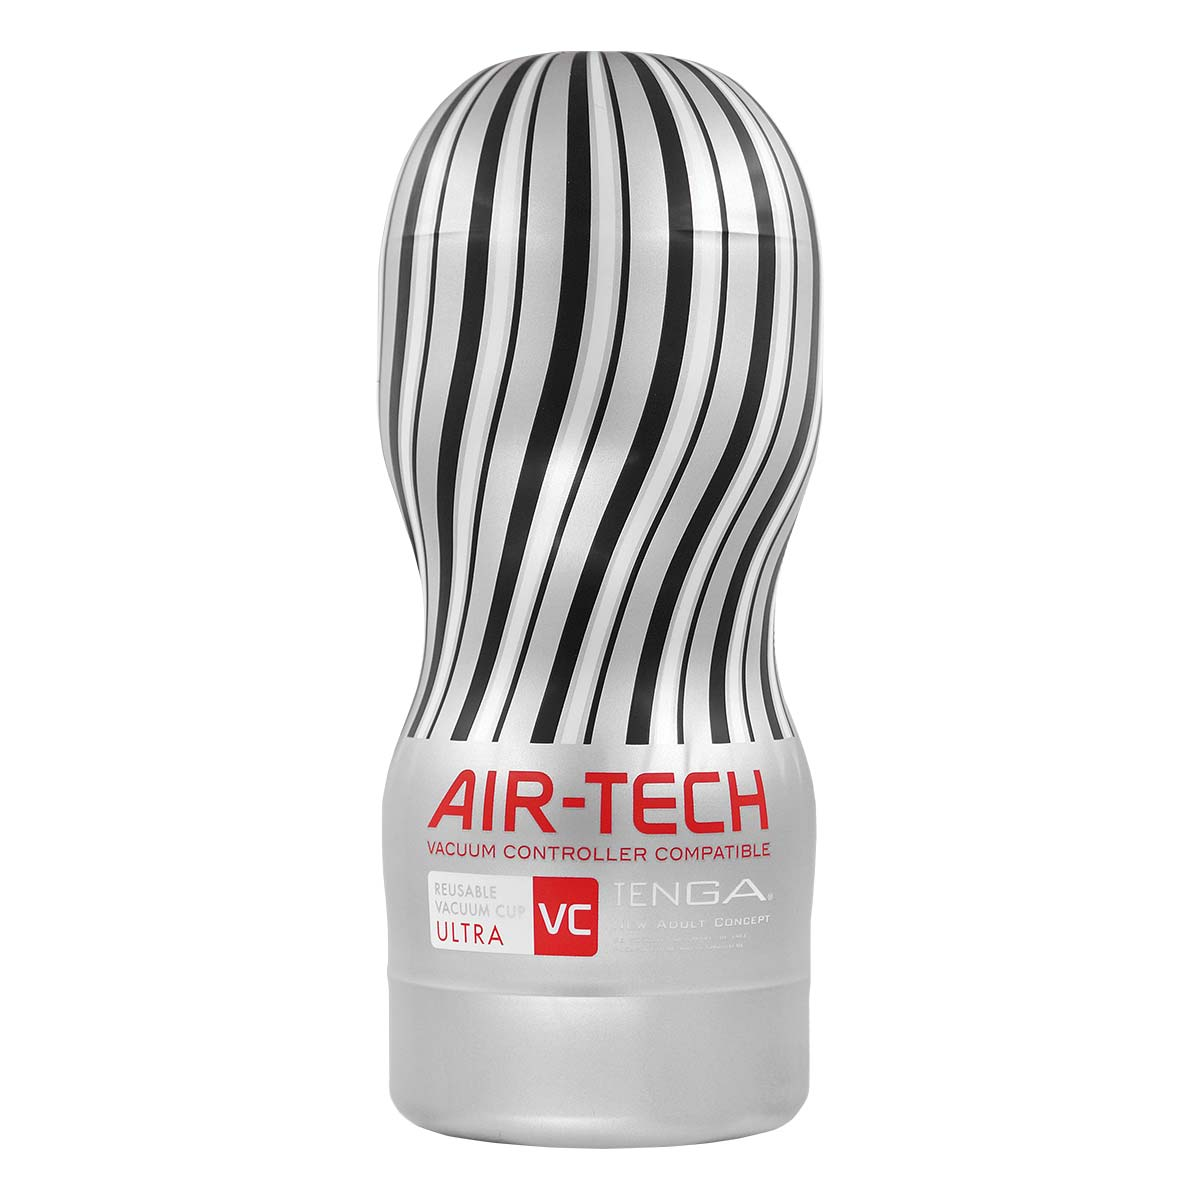 Air-Tech Reusable Vacuum CUP VC Ultra